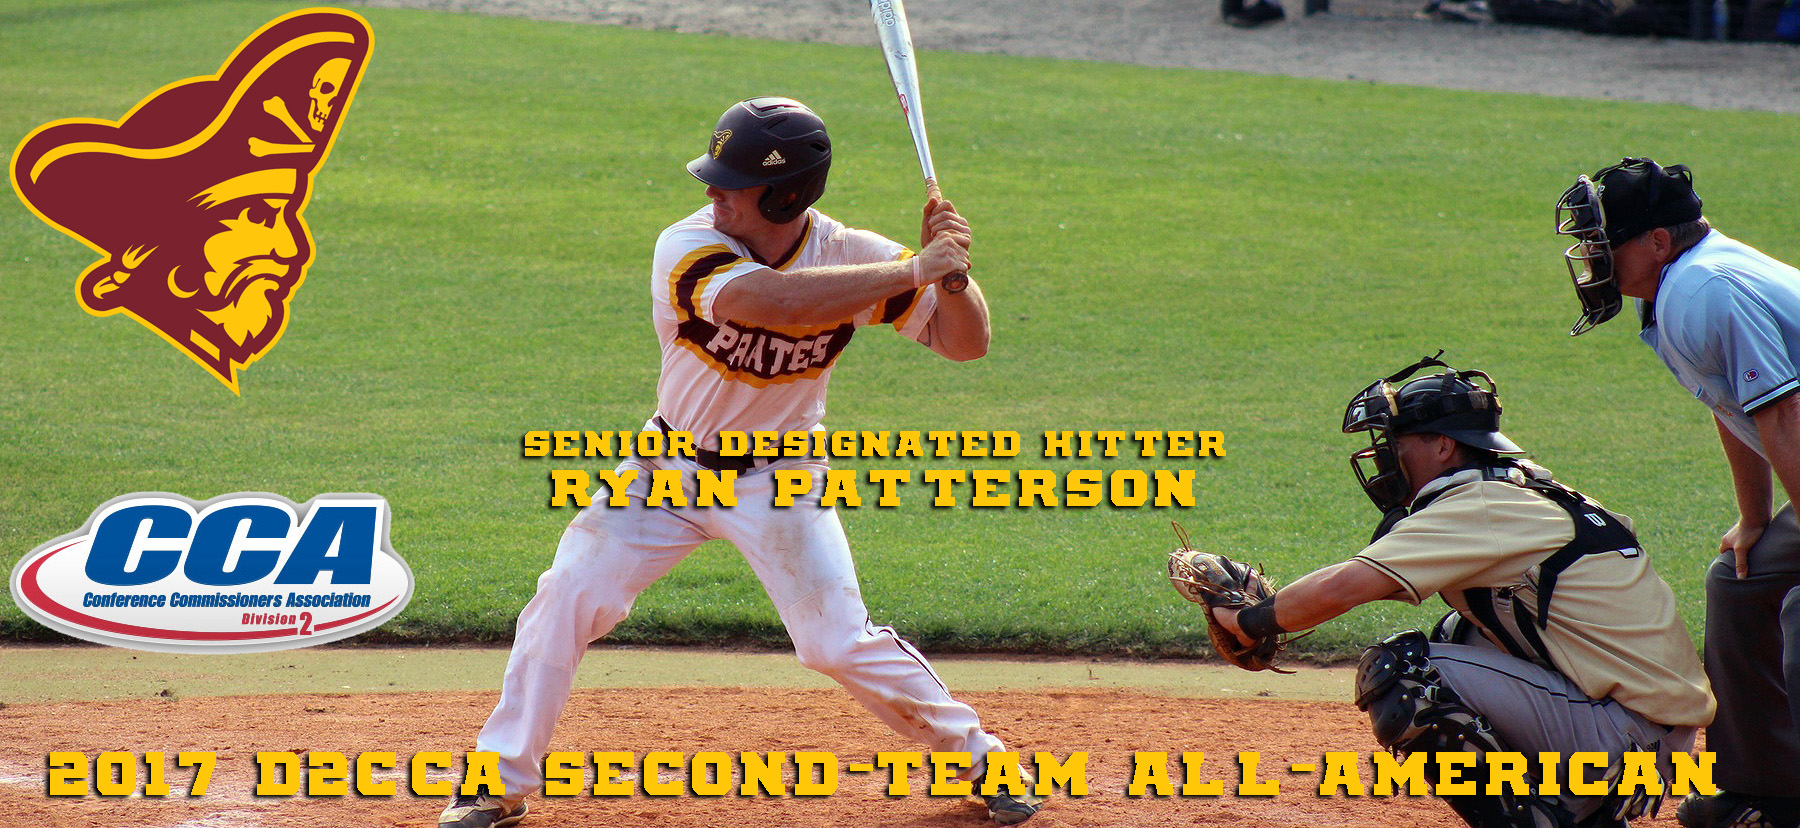 Ryan Patterson Earns Second-Team D2CCA All-American Baseball Honors